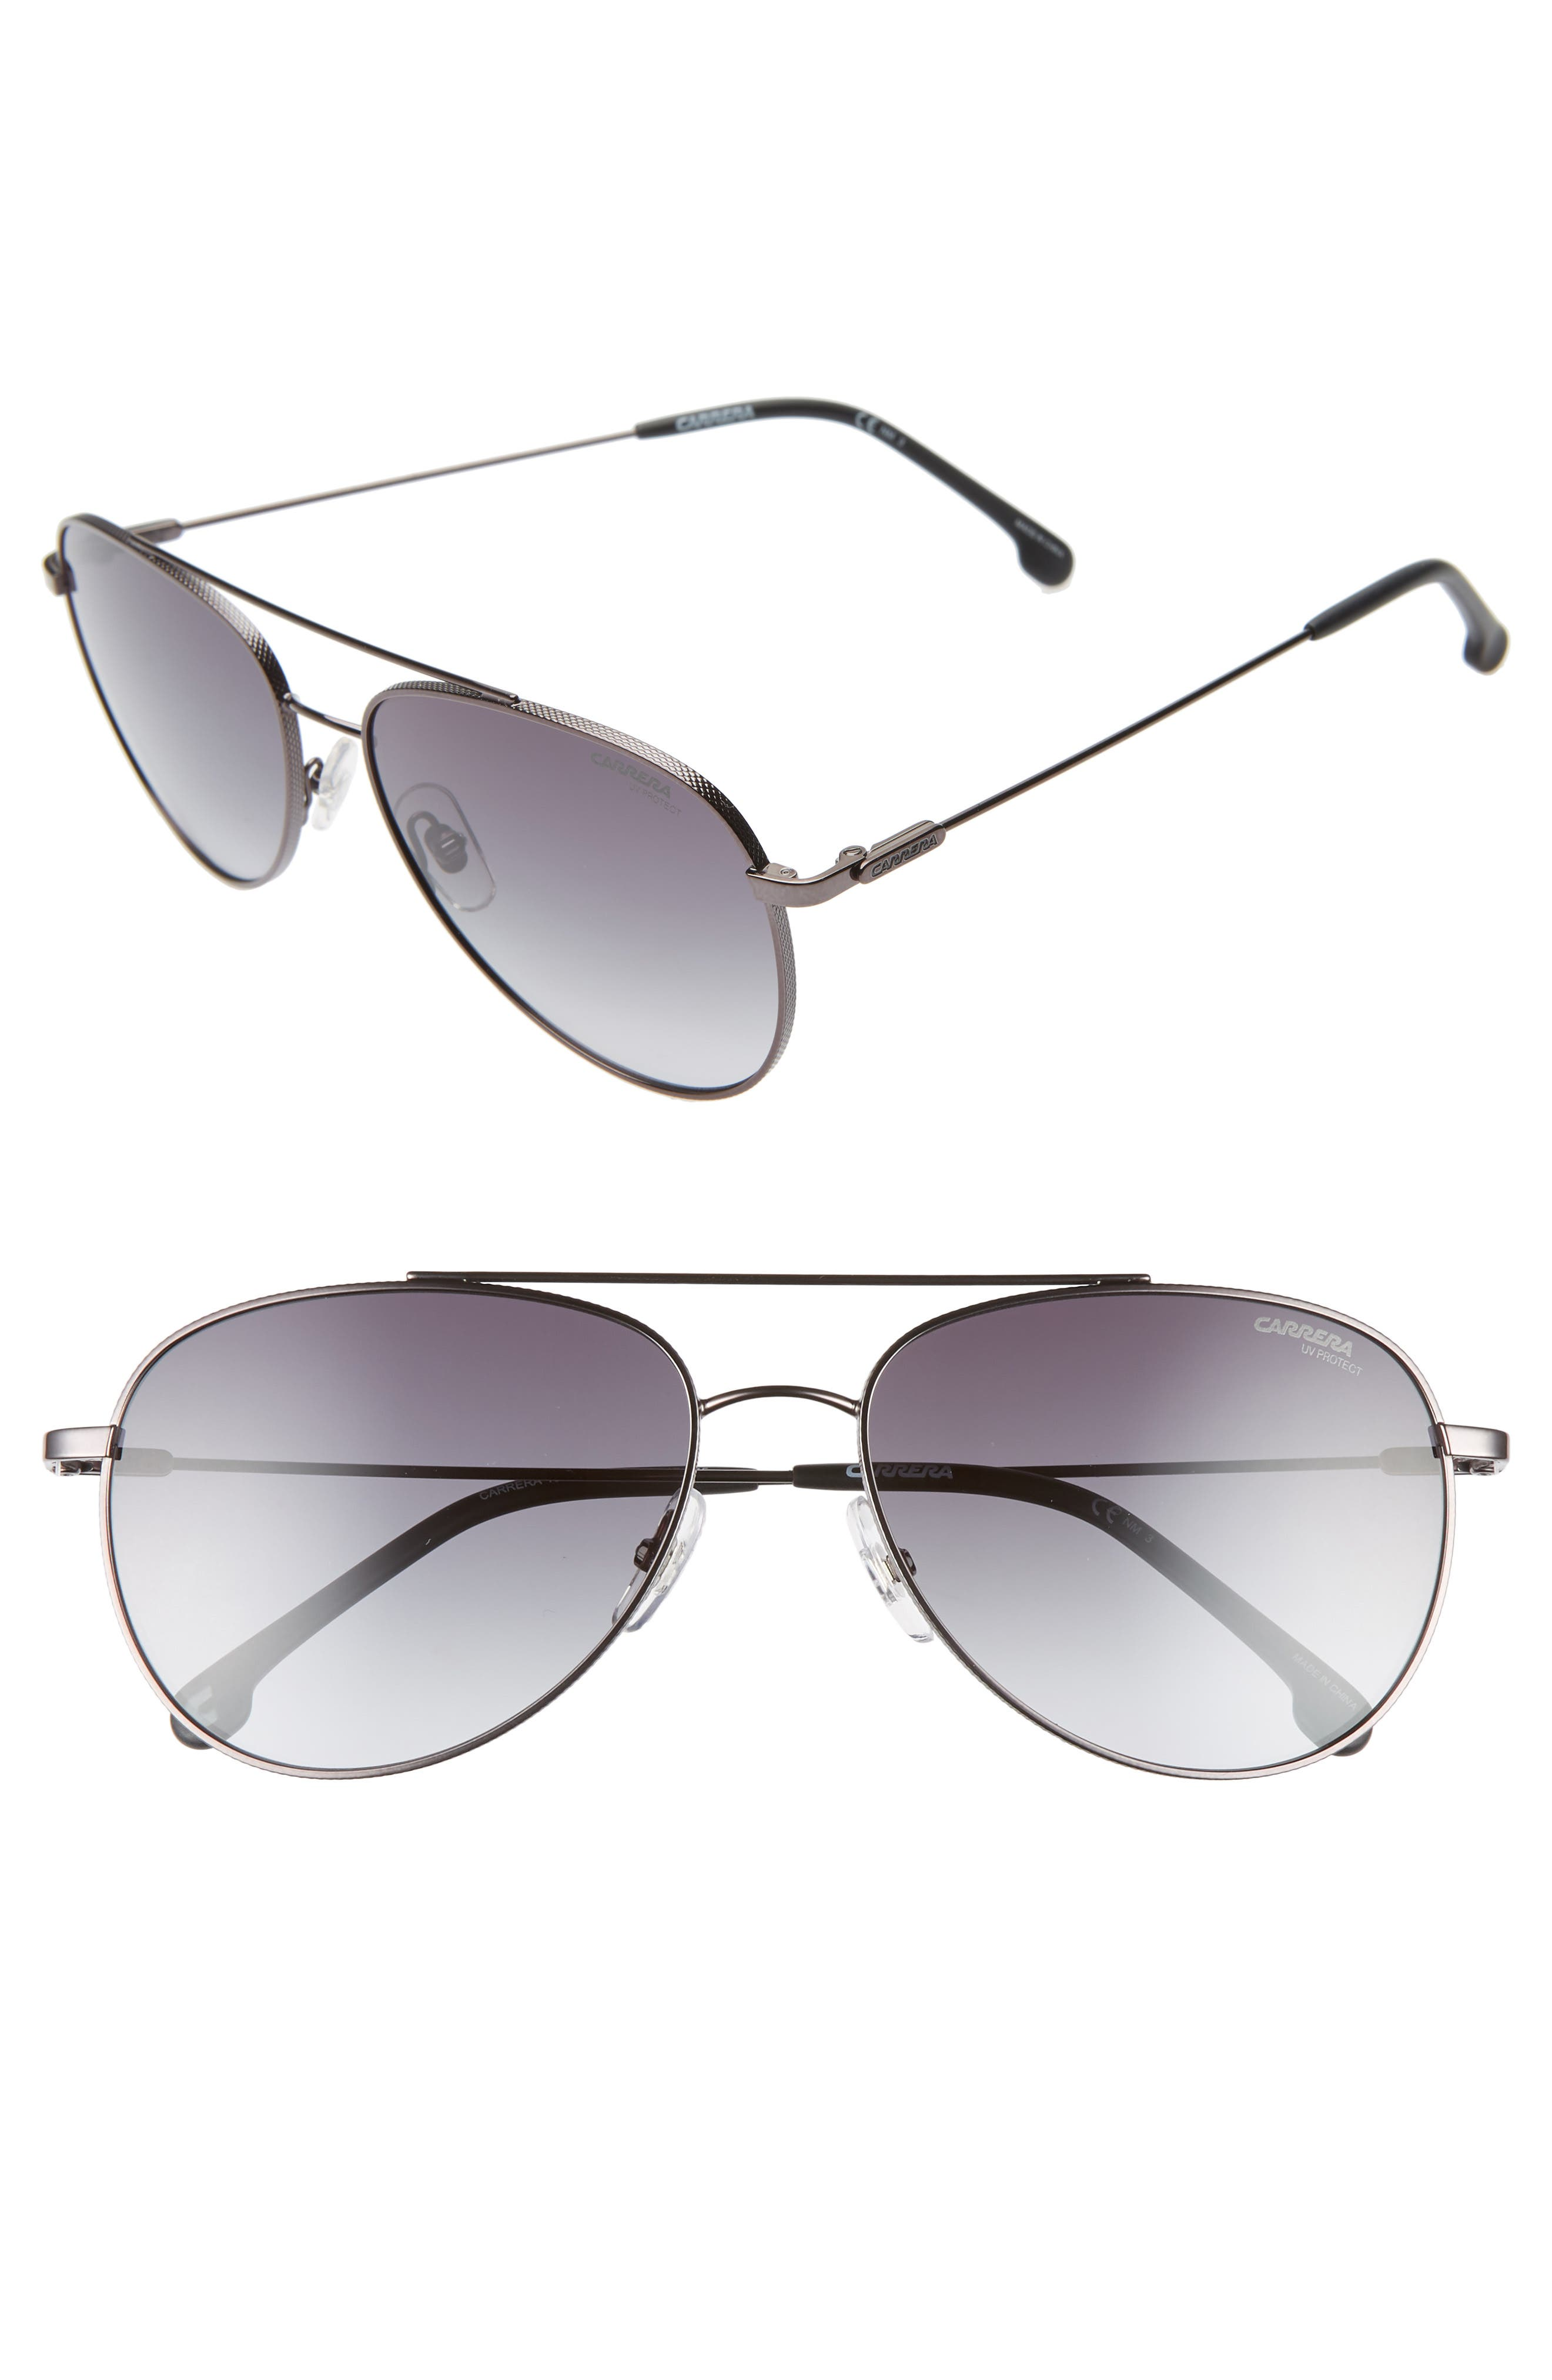 Carrera Eyewear 60Mm Aviator Sunglasses - Dark Ruthenium Black